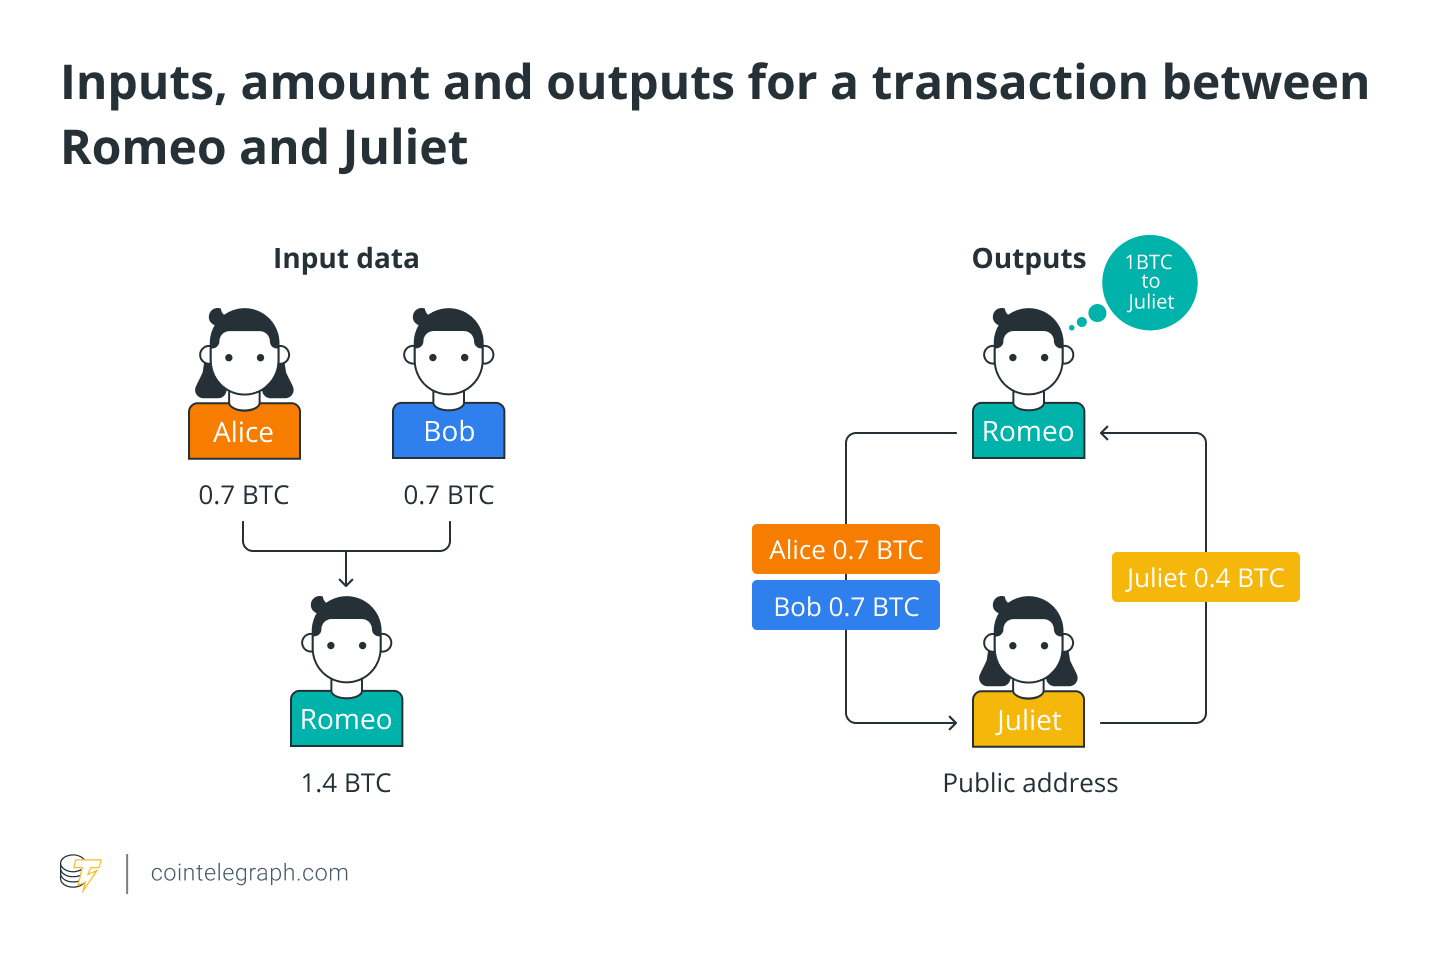 Inputs, amount and outputs for a transaction between Romeo and Juliet